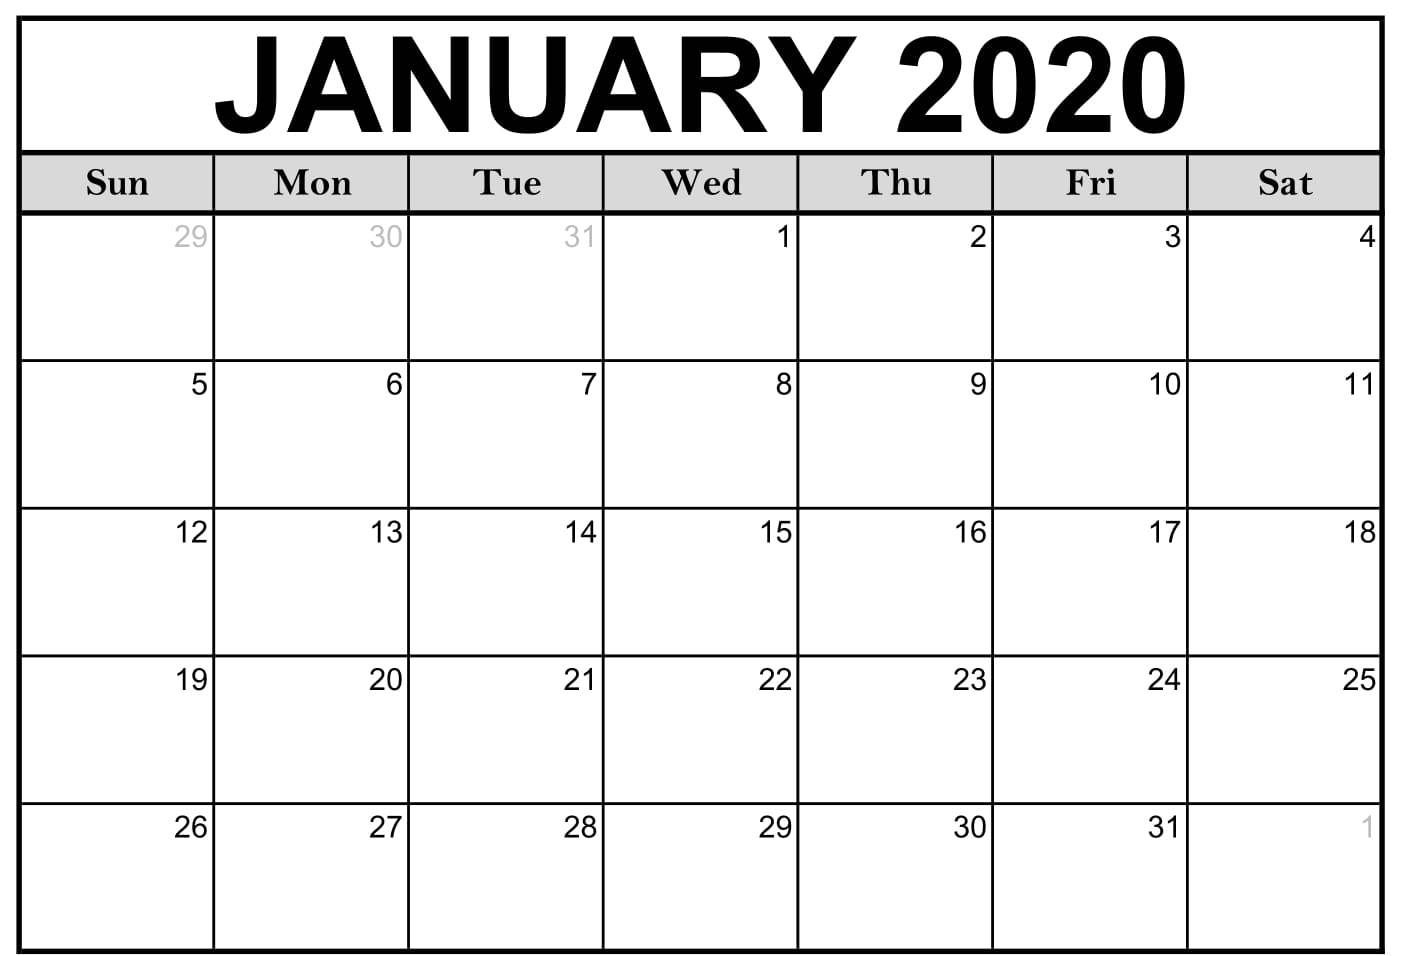 Blank January 2020 Calendar Template #2020Calendar for Printable January 2020 Calendar